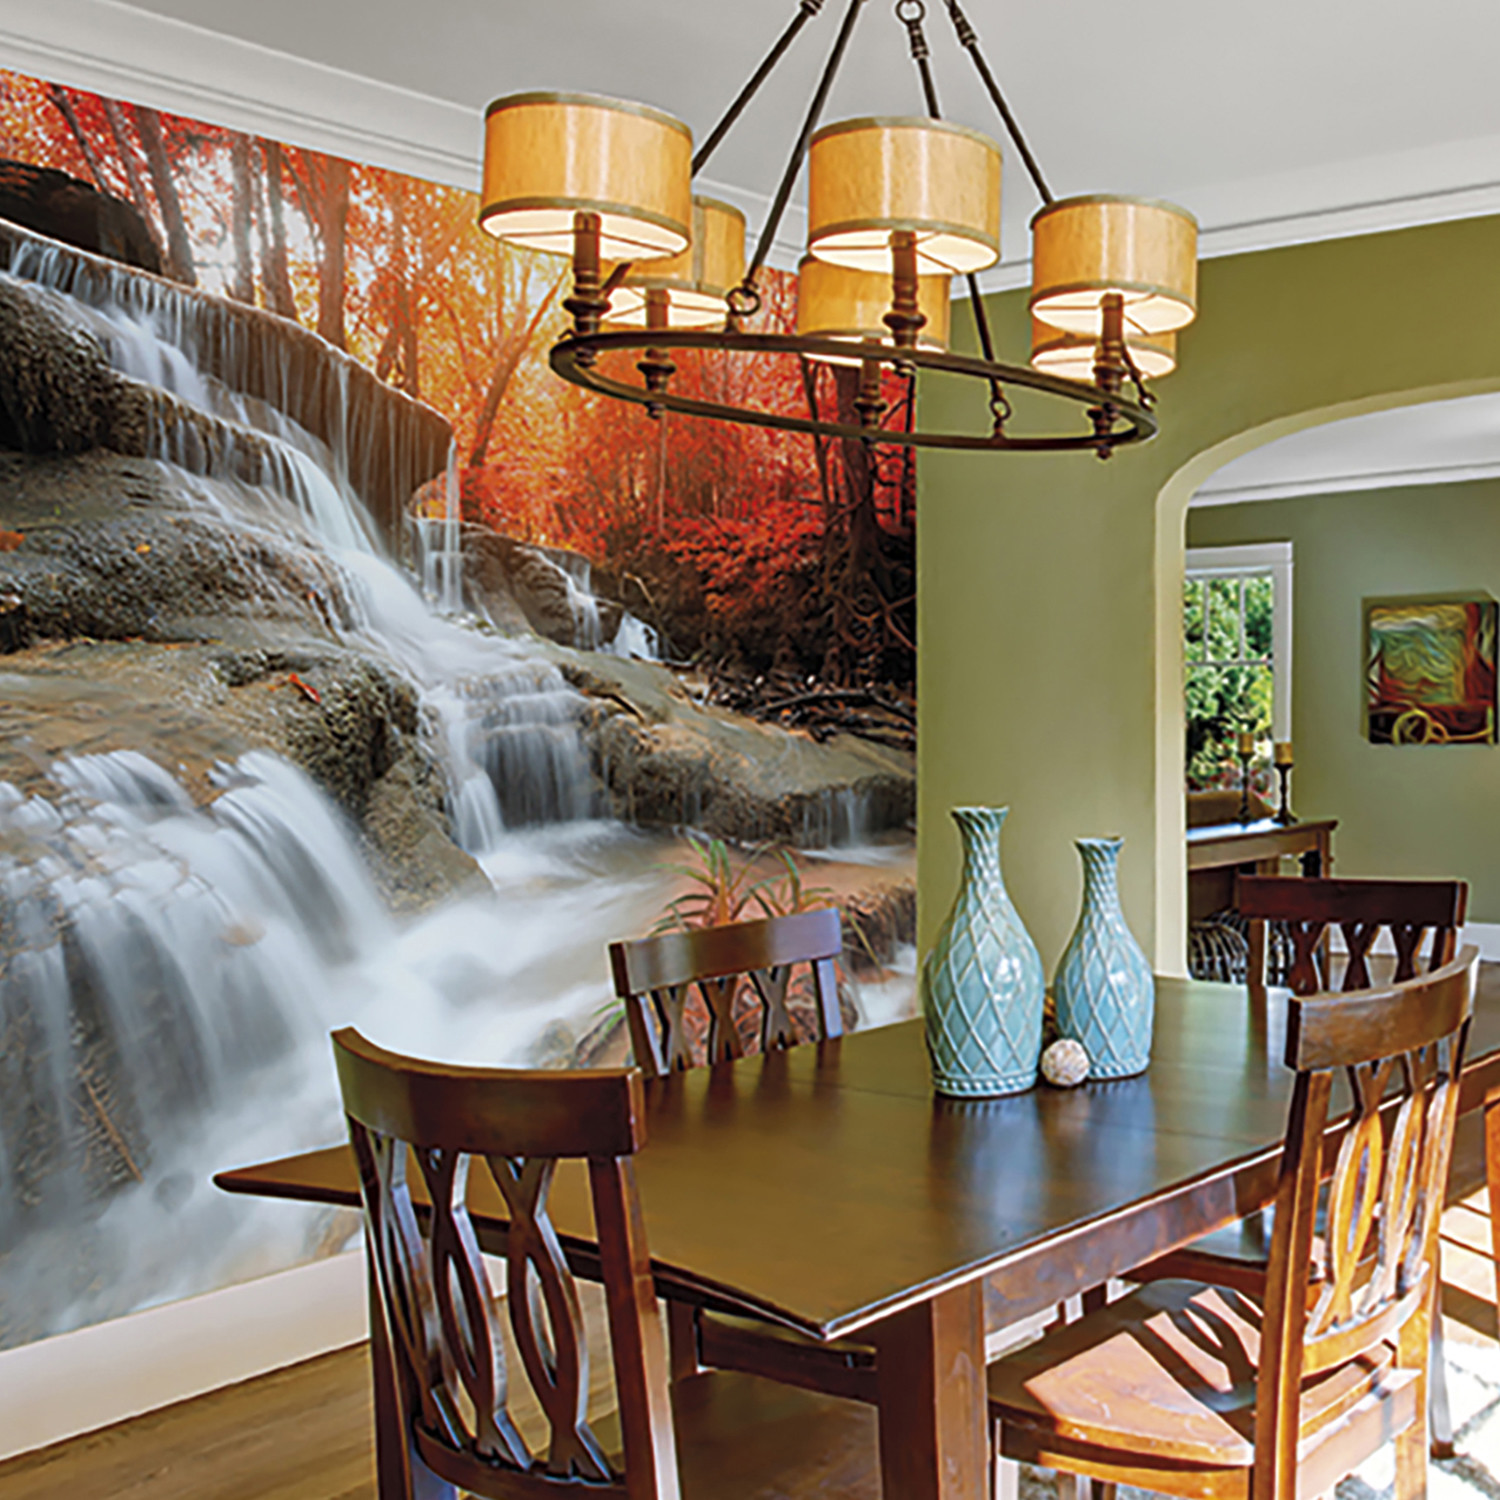 Autumn waterfall wall mural brewster home fashions for Brewster home fashions wall mural